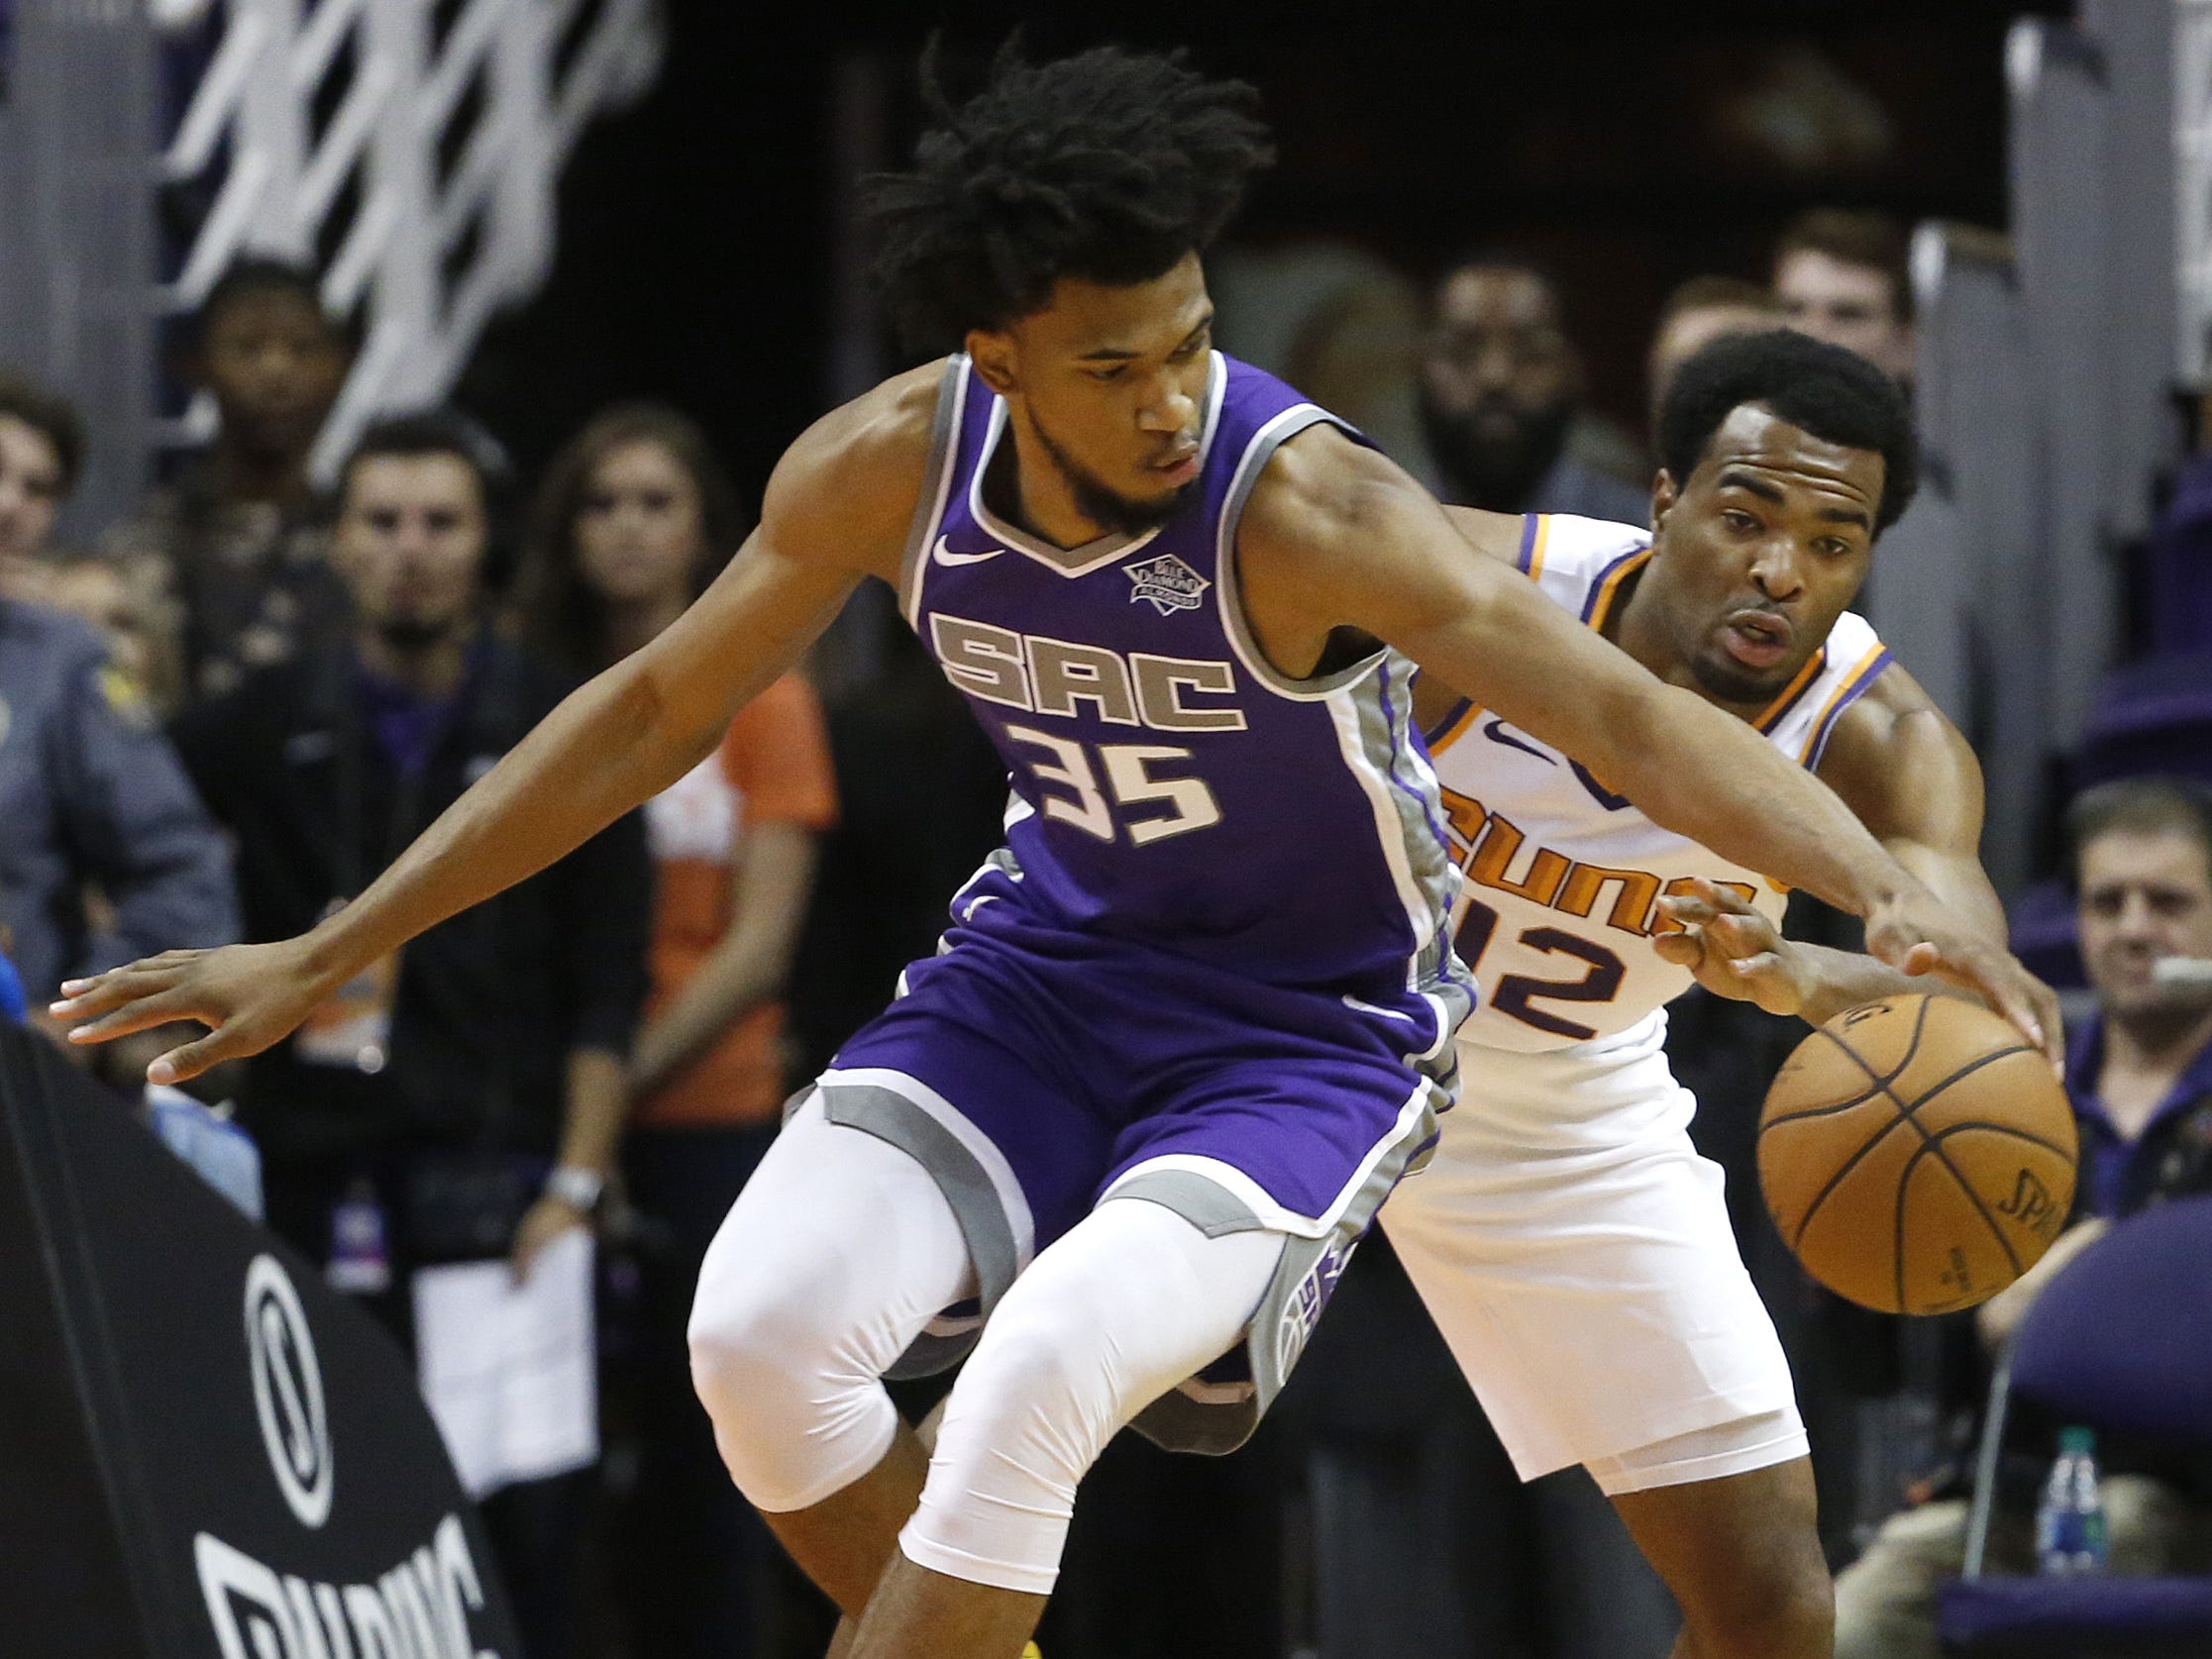 Suns TJ Warren (12) defends Kings Marvin Bagley III (35) during the first half at Talking Stick Resort Arena in Phoenix, Ariz. on October 1, 2018.